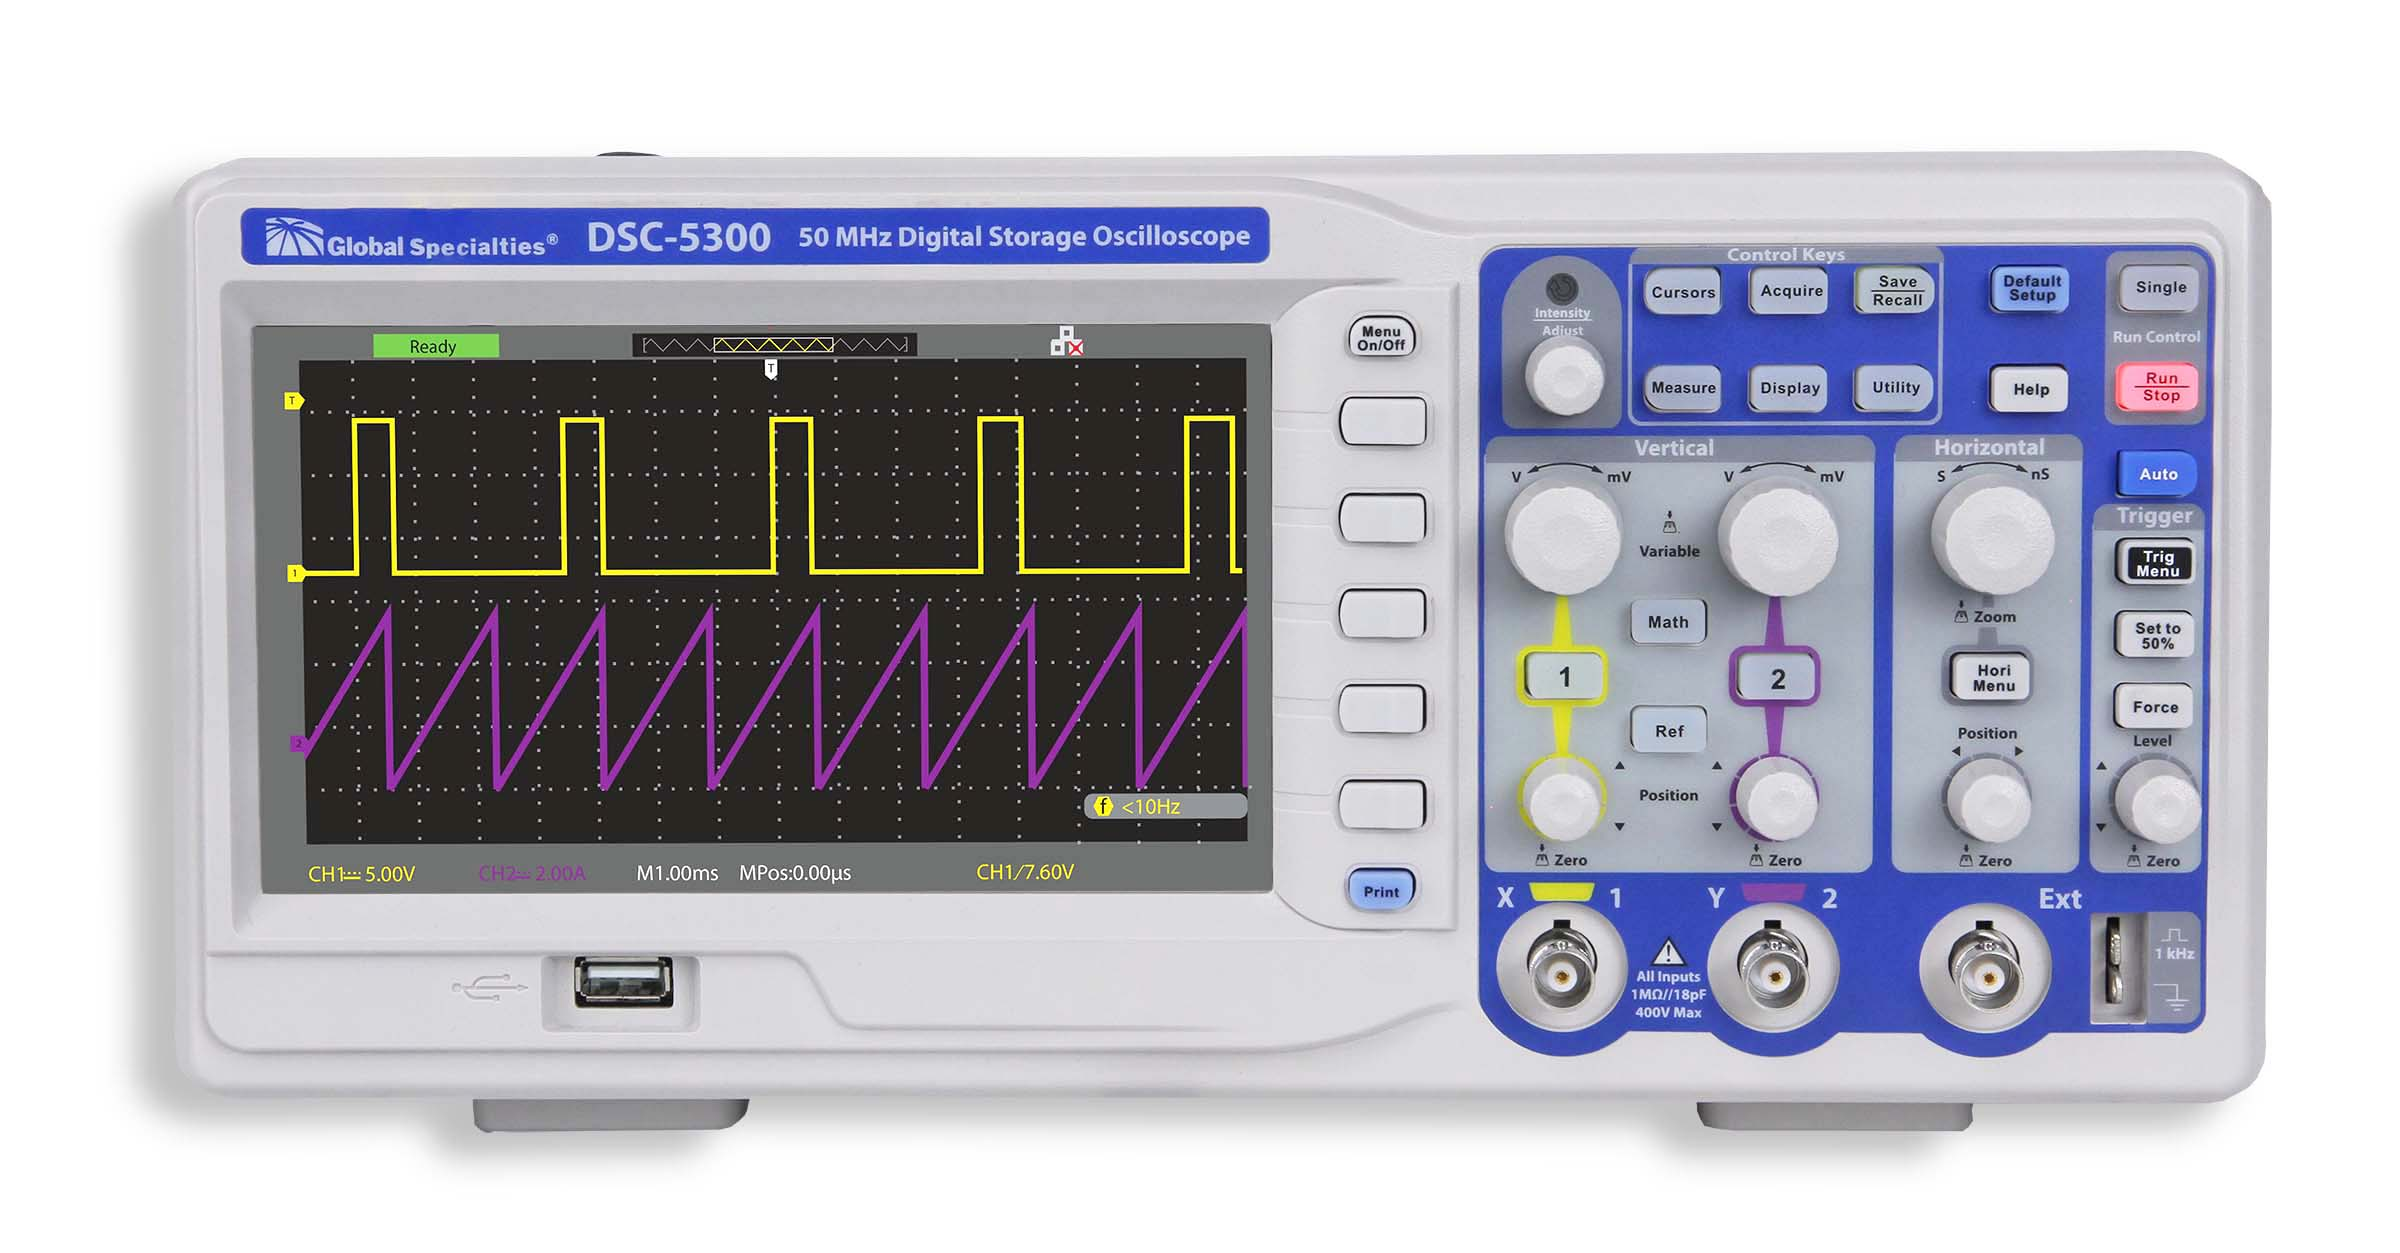 Global Specialties DSC-5300 50 MHz Digital Storage Oscilloscope Photo